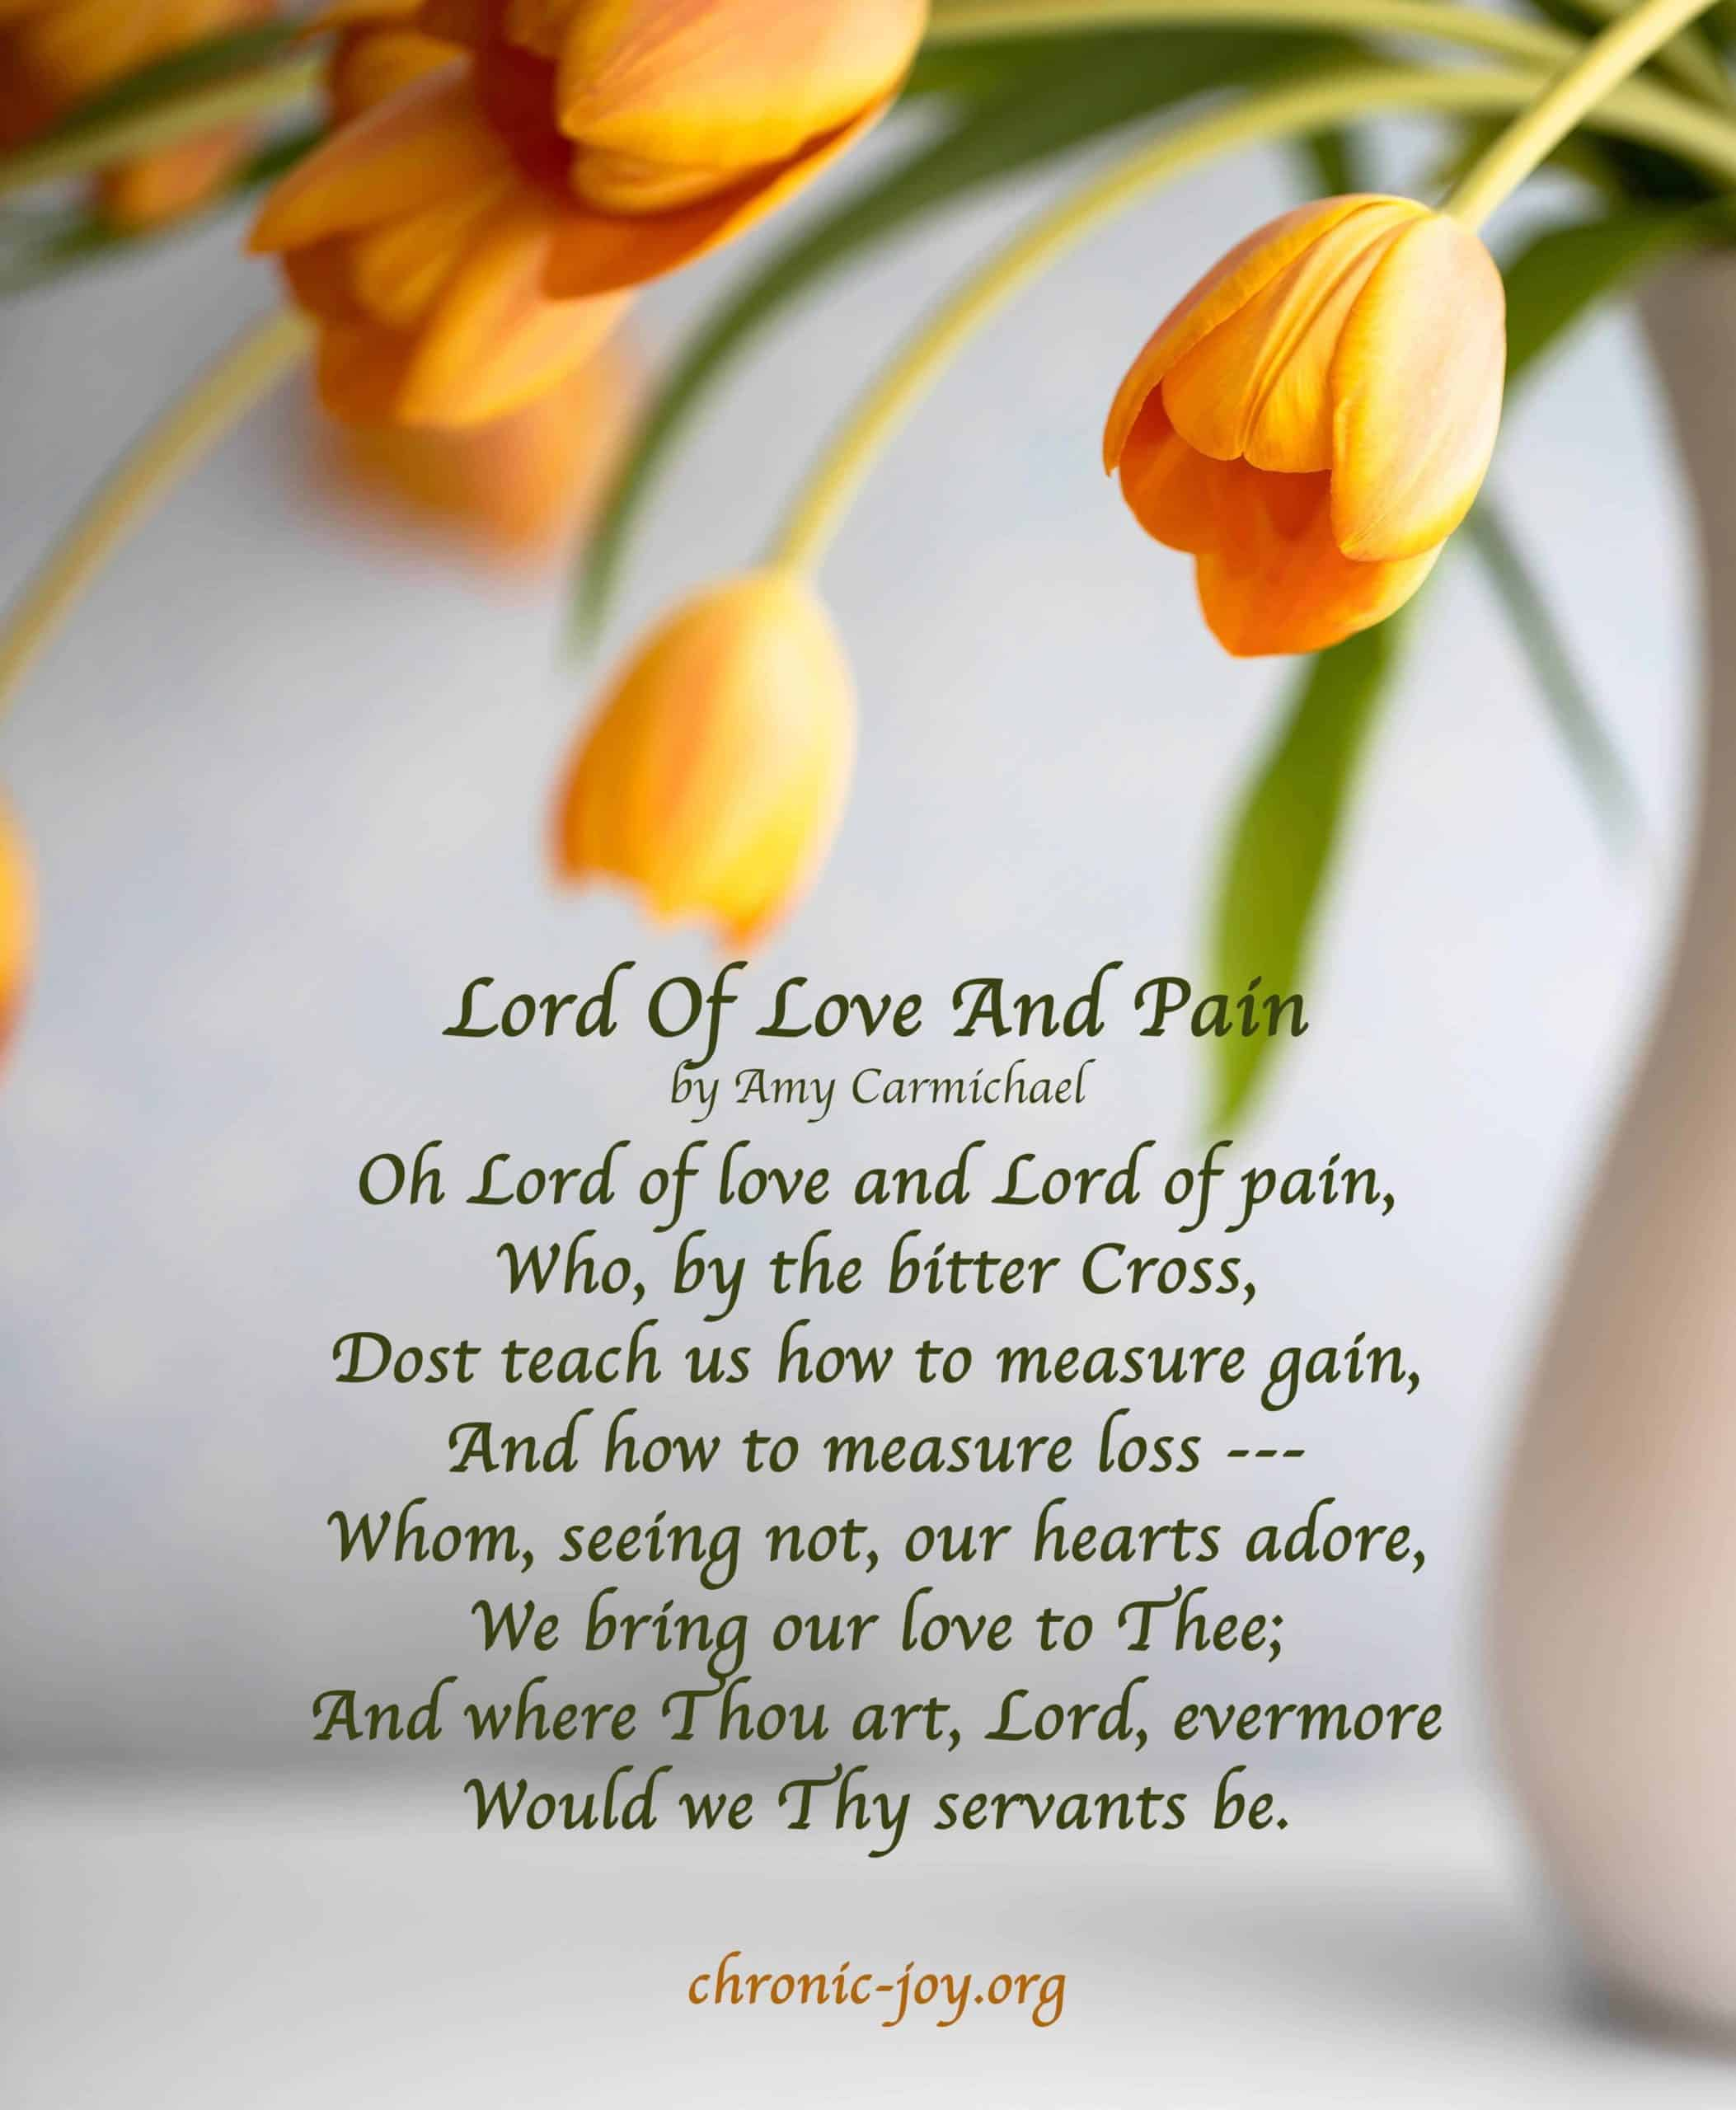 Lord of Love and Pain - Amy Carmichael